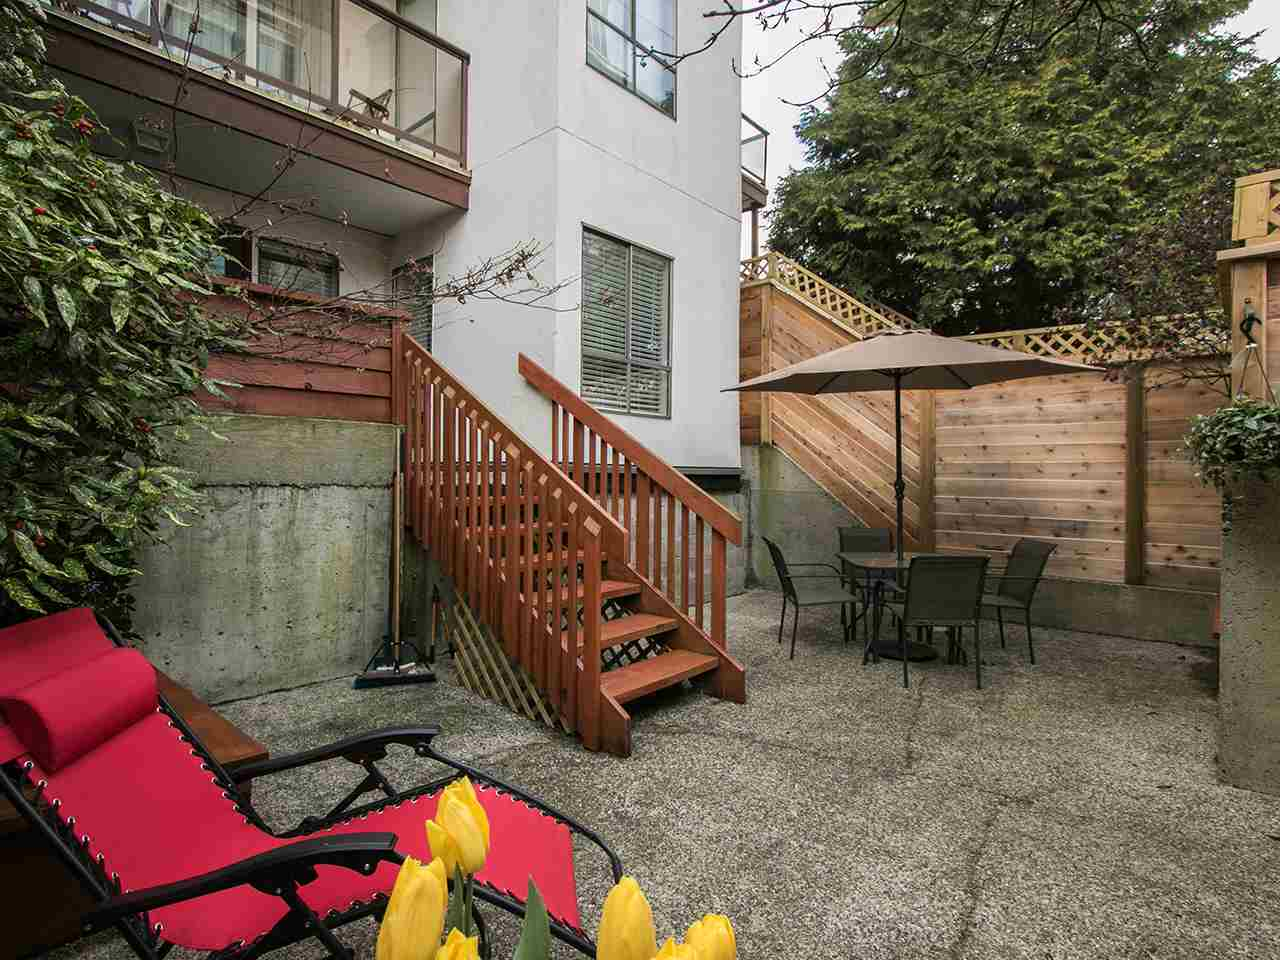 Photo 17: 101 1775 W 10TH AVENUE in Vancouver: Fairview VW Condo for sale (Vancouver West)  : MLS® # R2038742